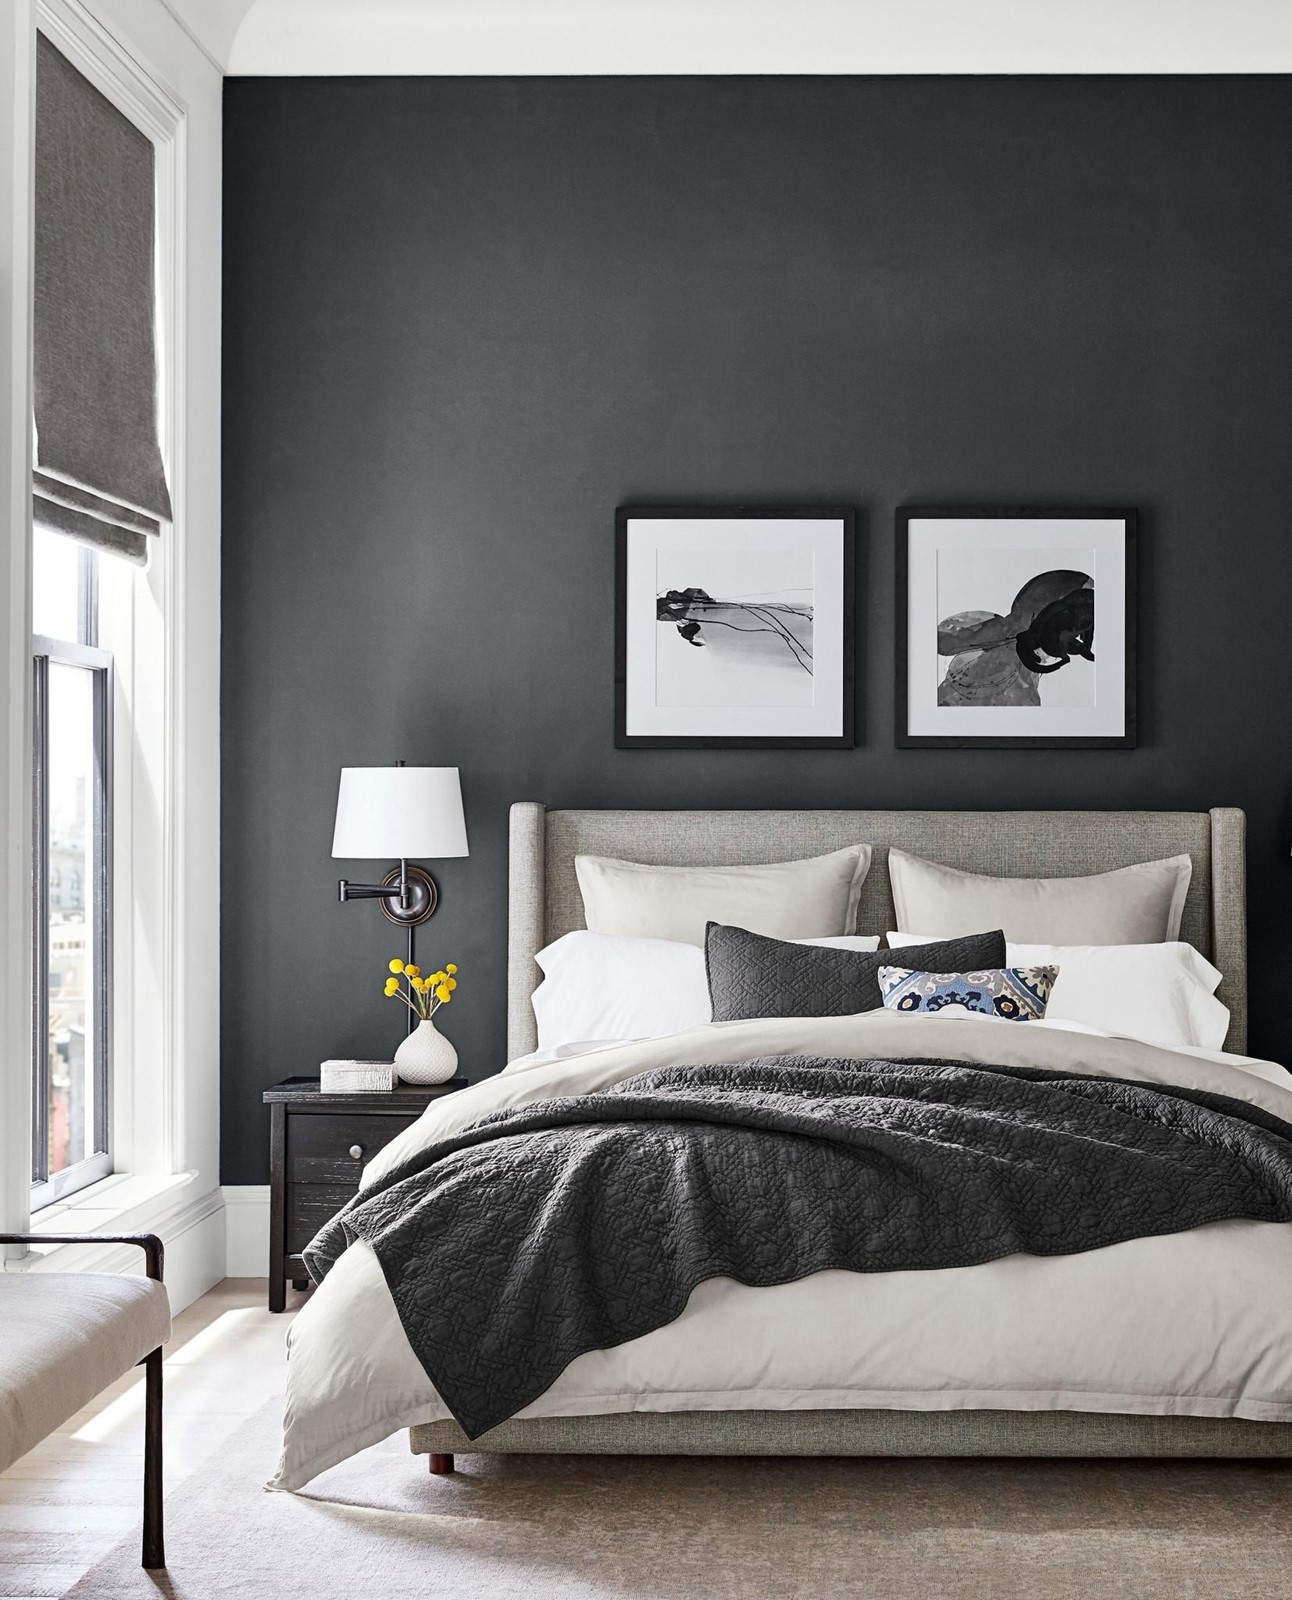 Create A Welcoming Guest Room City